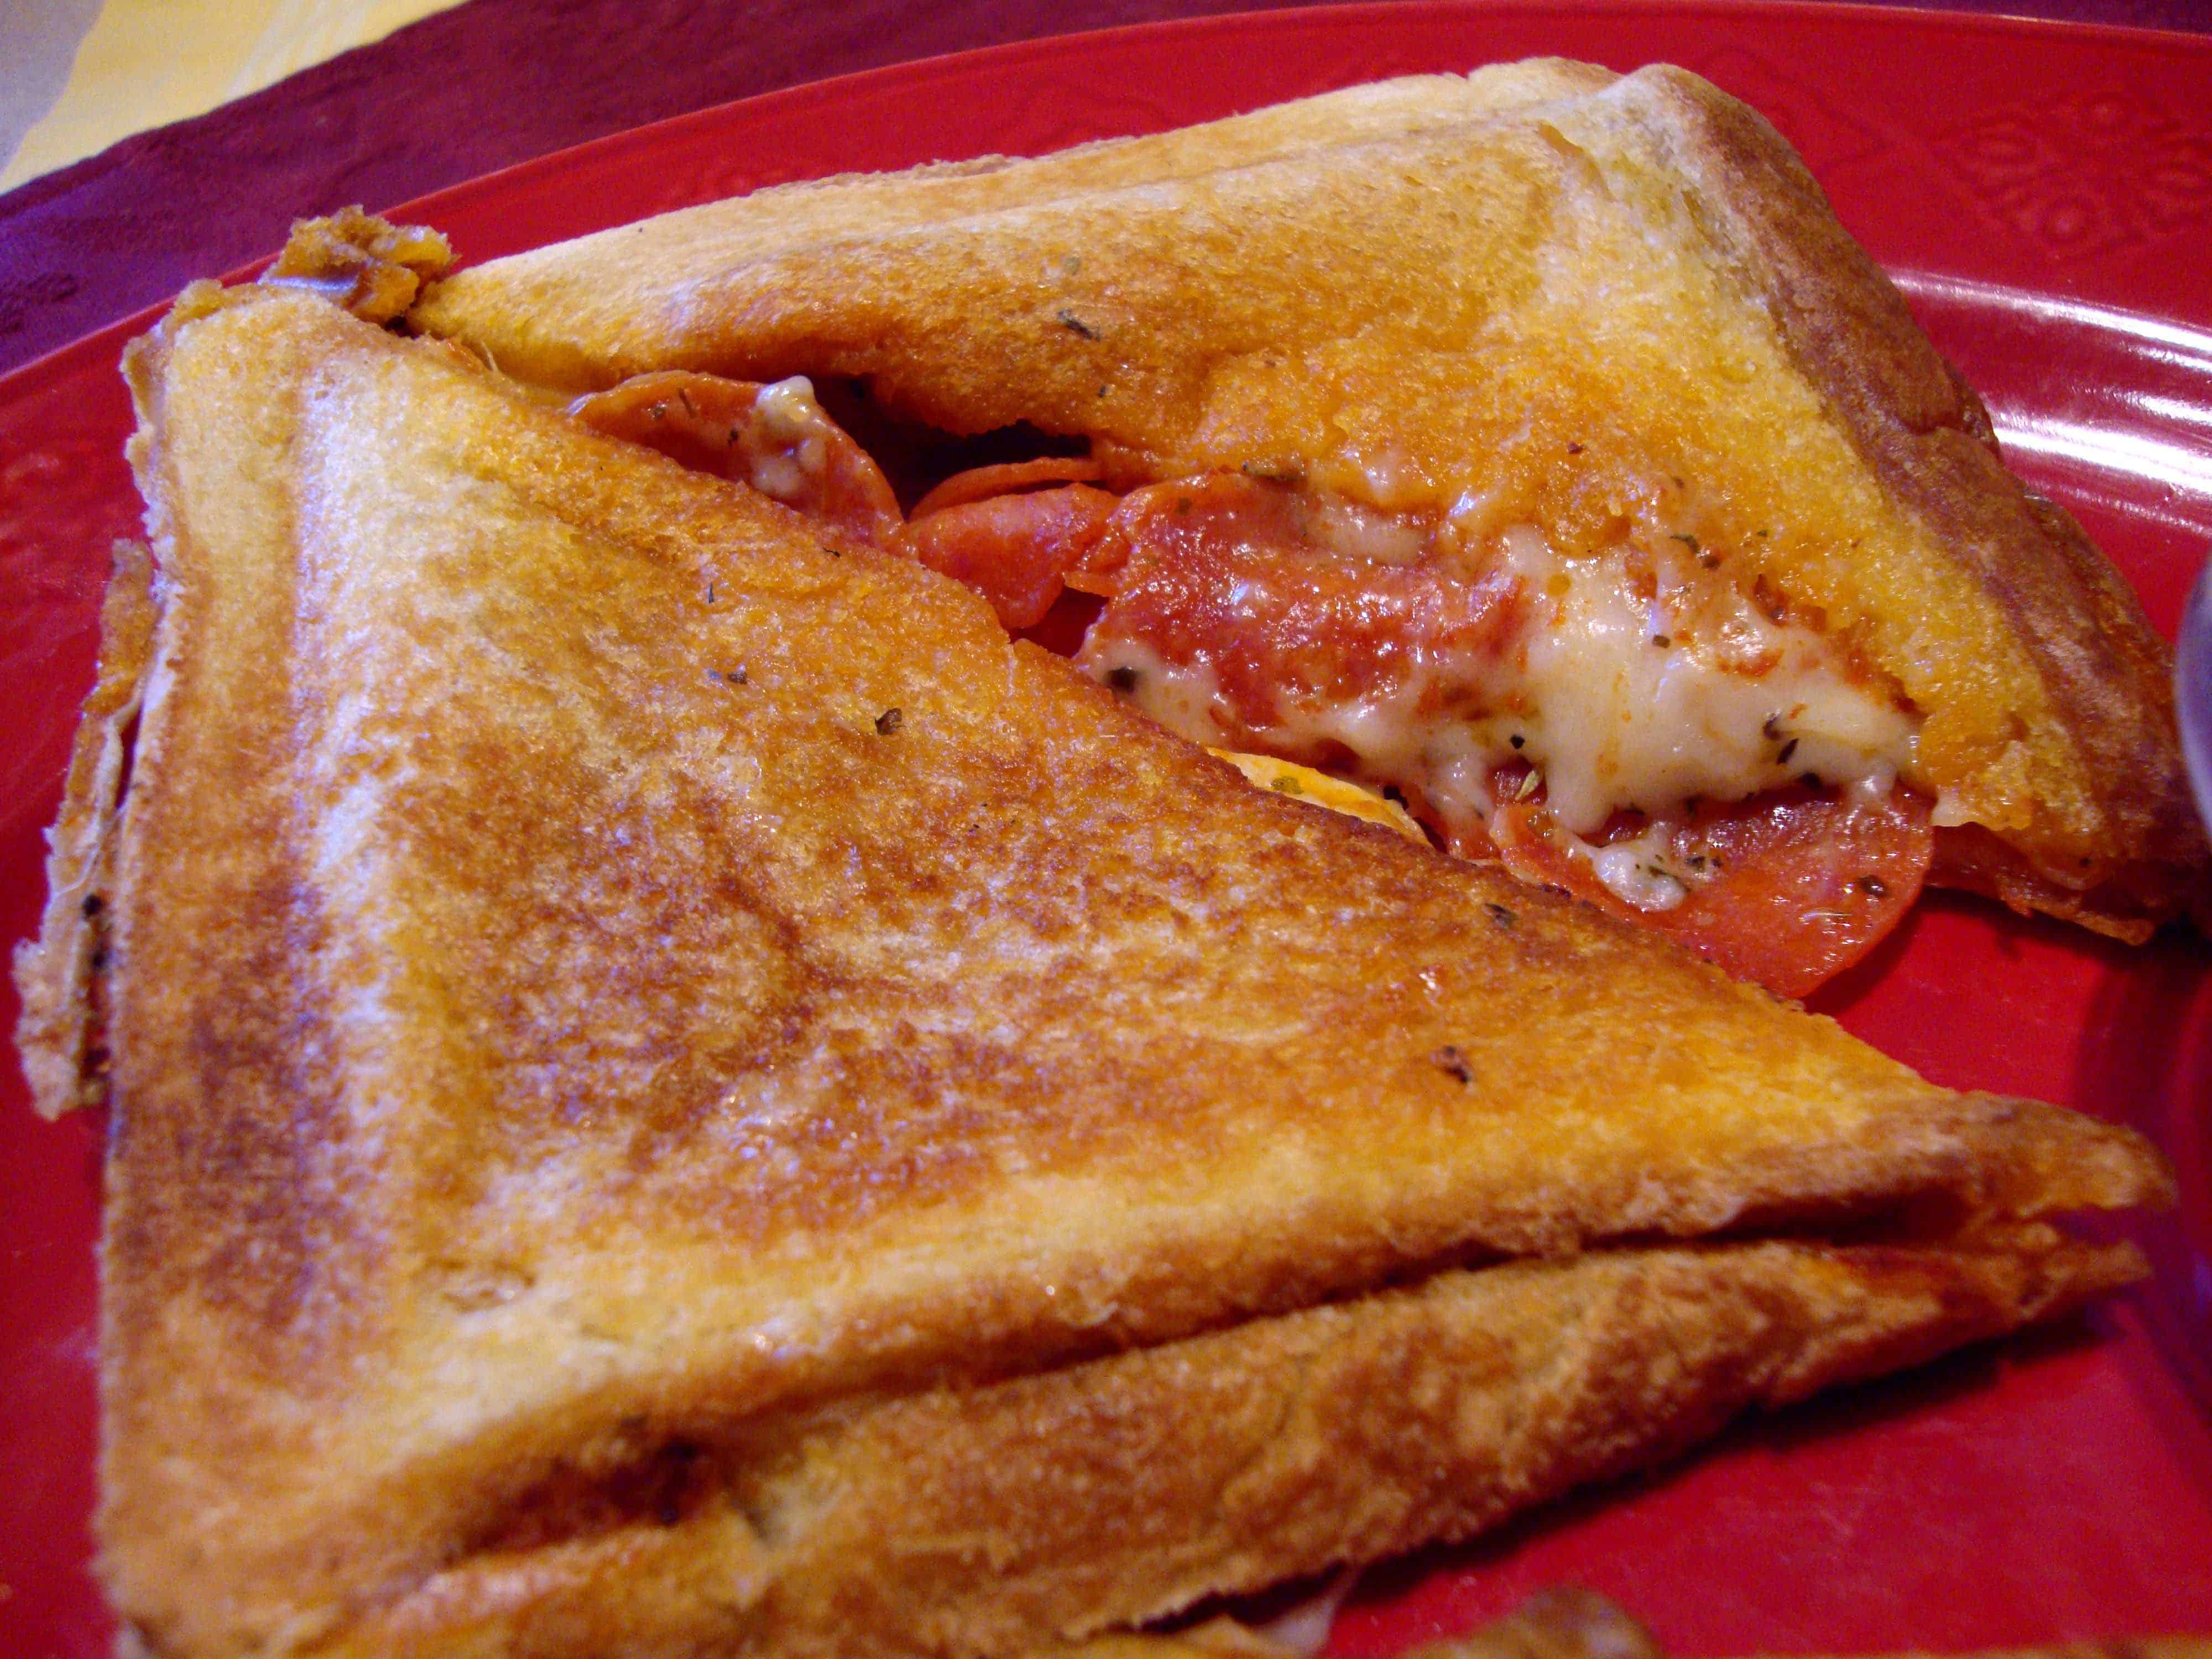 Pudgy pie pizza sandwich